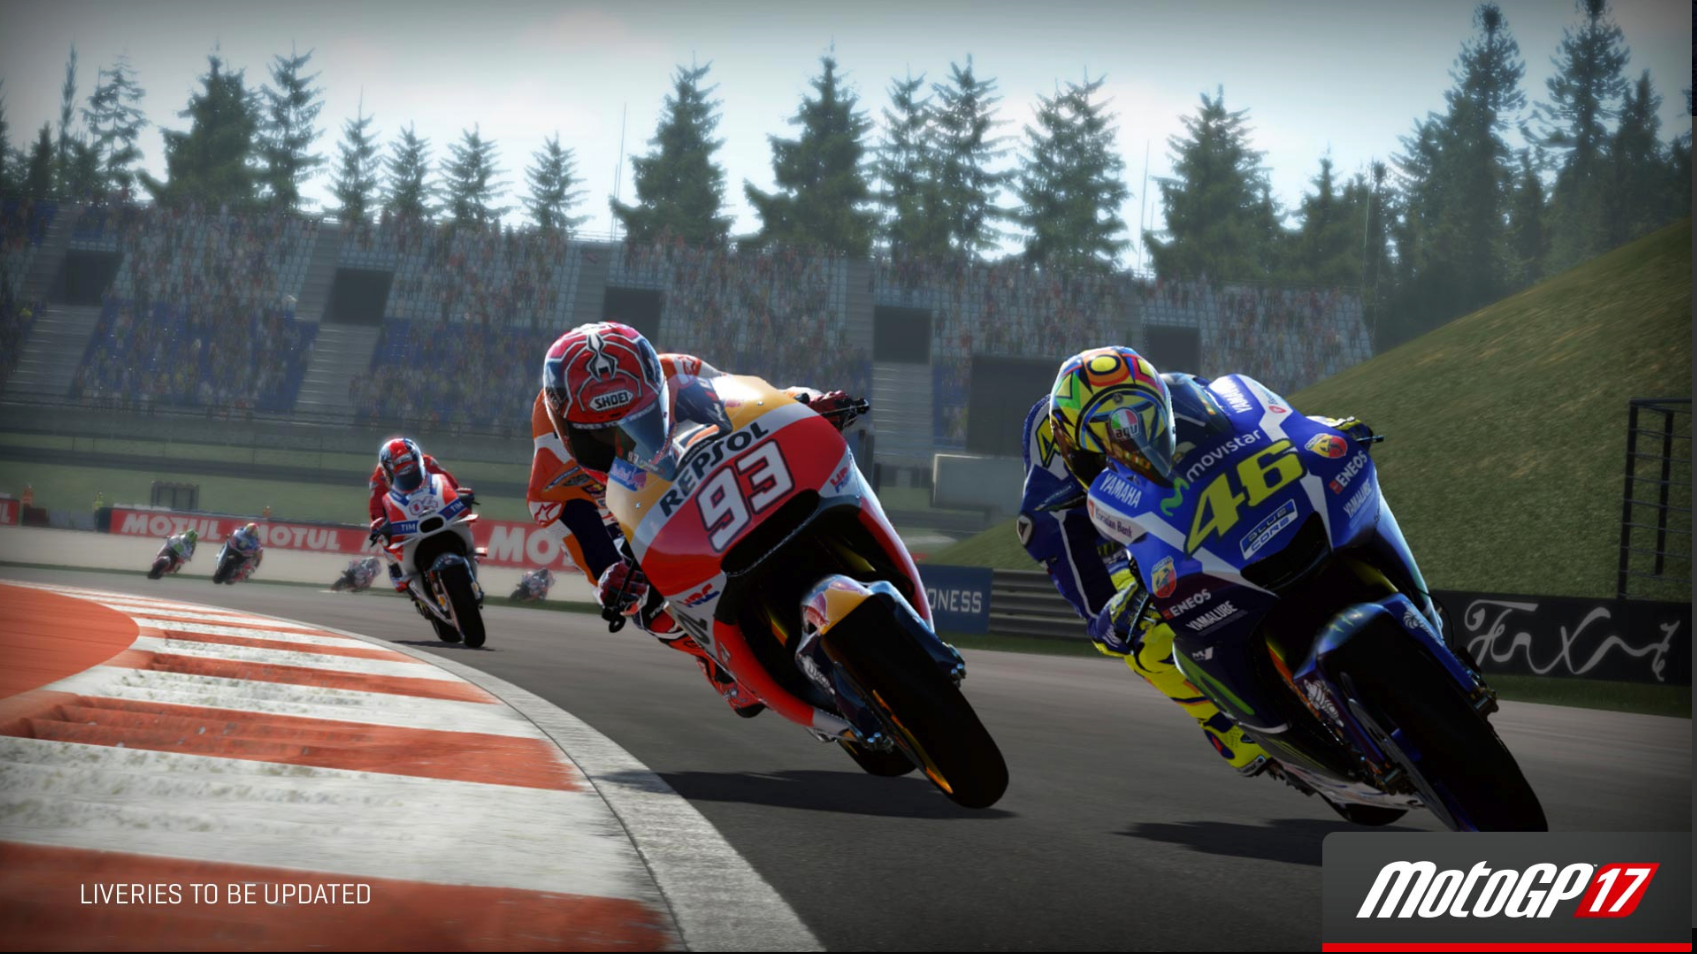 MotoGP 17 – Release Date Announced - Inside Sim Racing